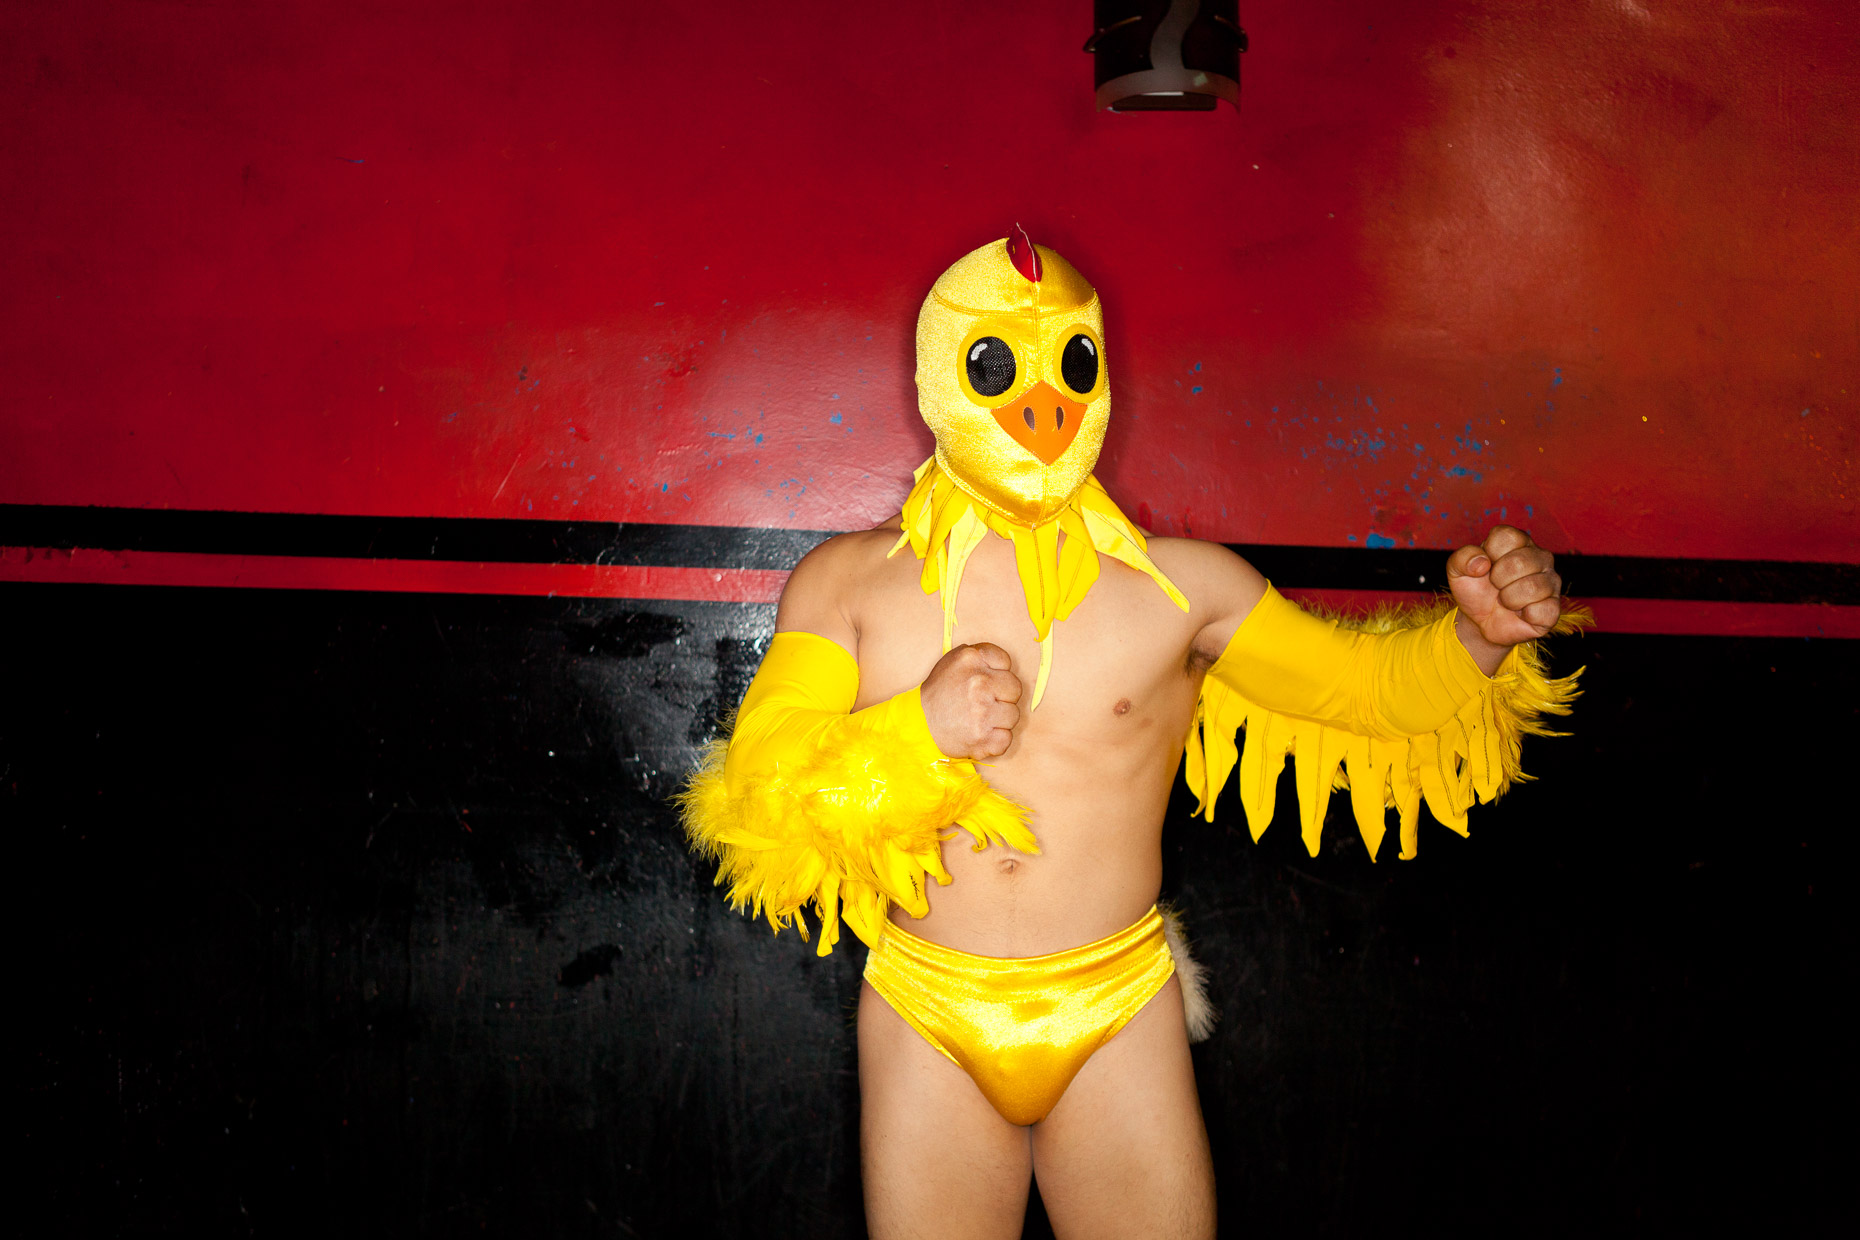 Lucha Vavoom Mexican wrestling and burlesque show in Los Angeles by David Zaitz, man in chicken costume against red wall